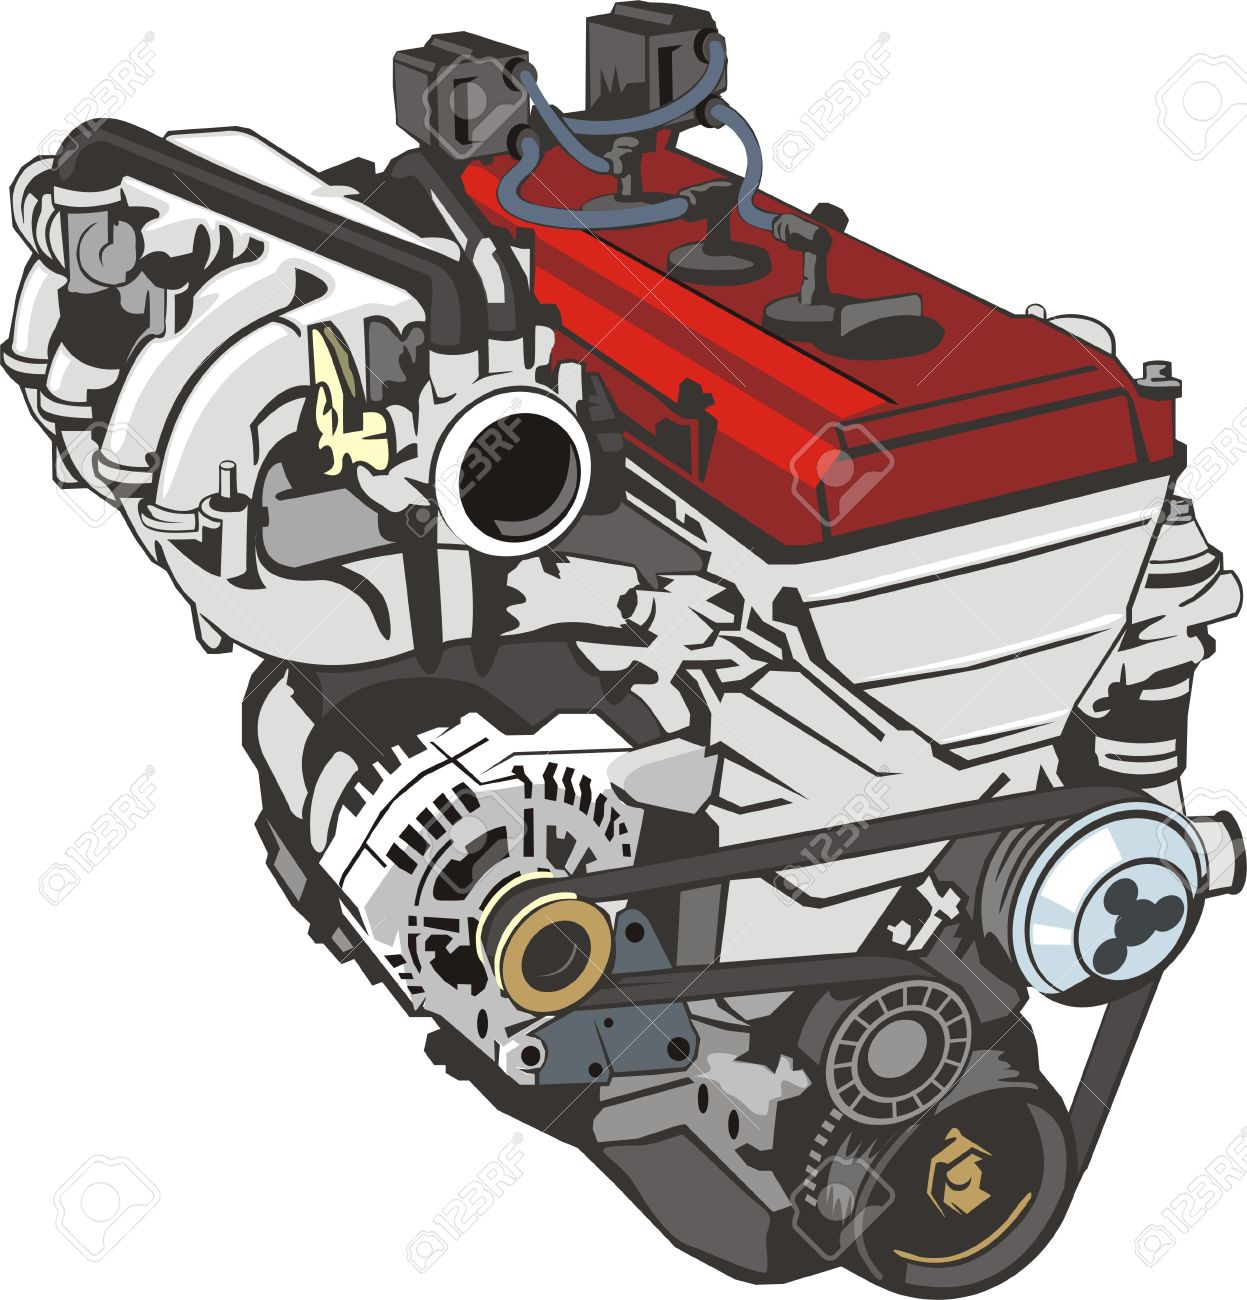 Engine Of Internal Combustion Frontal Royalty Free Cliparts.